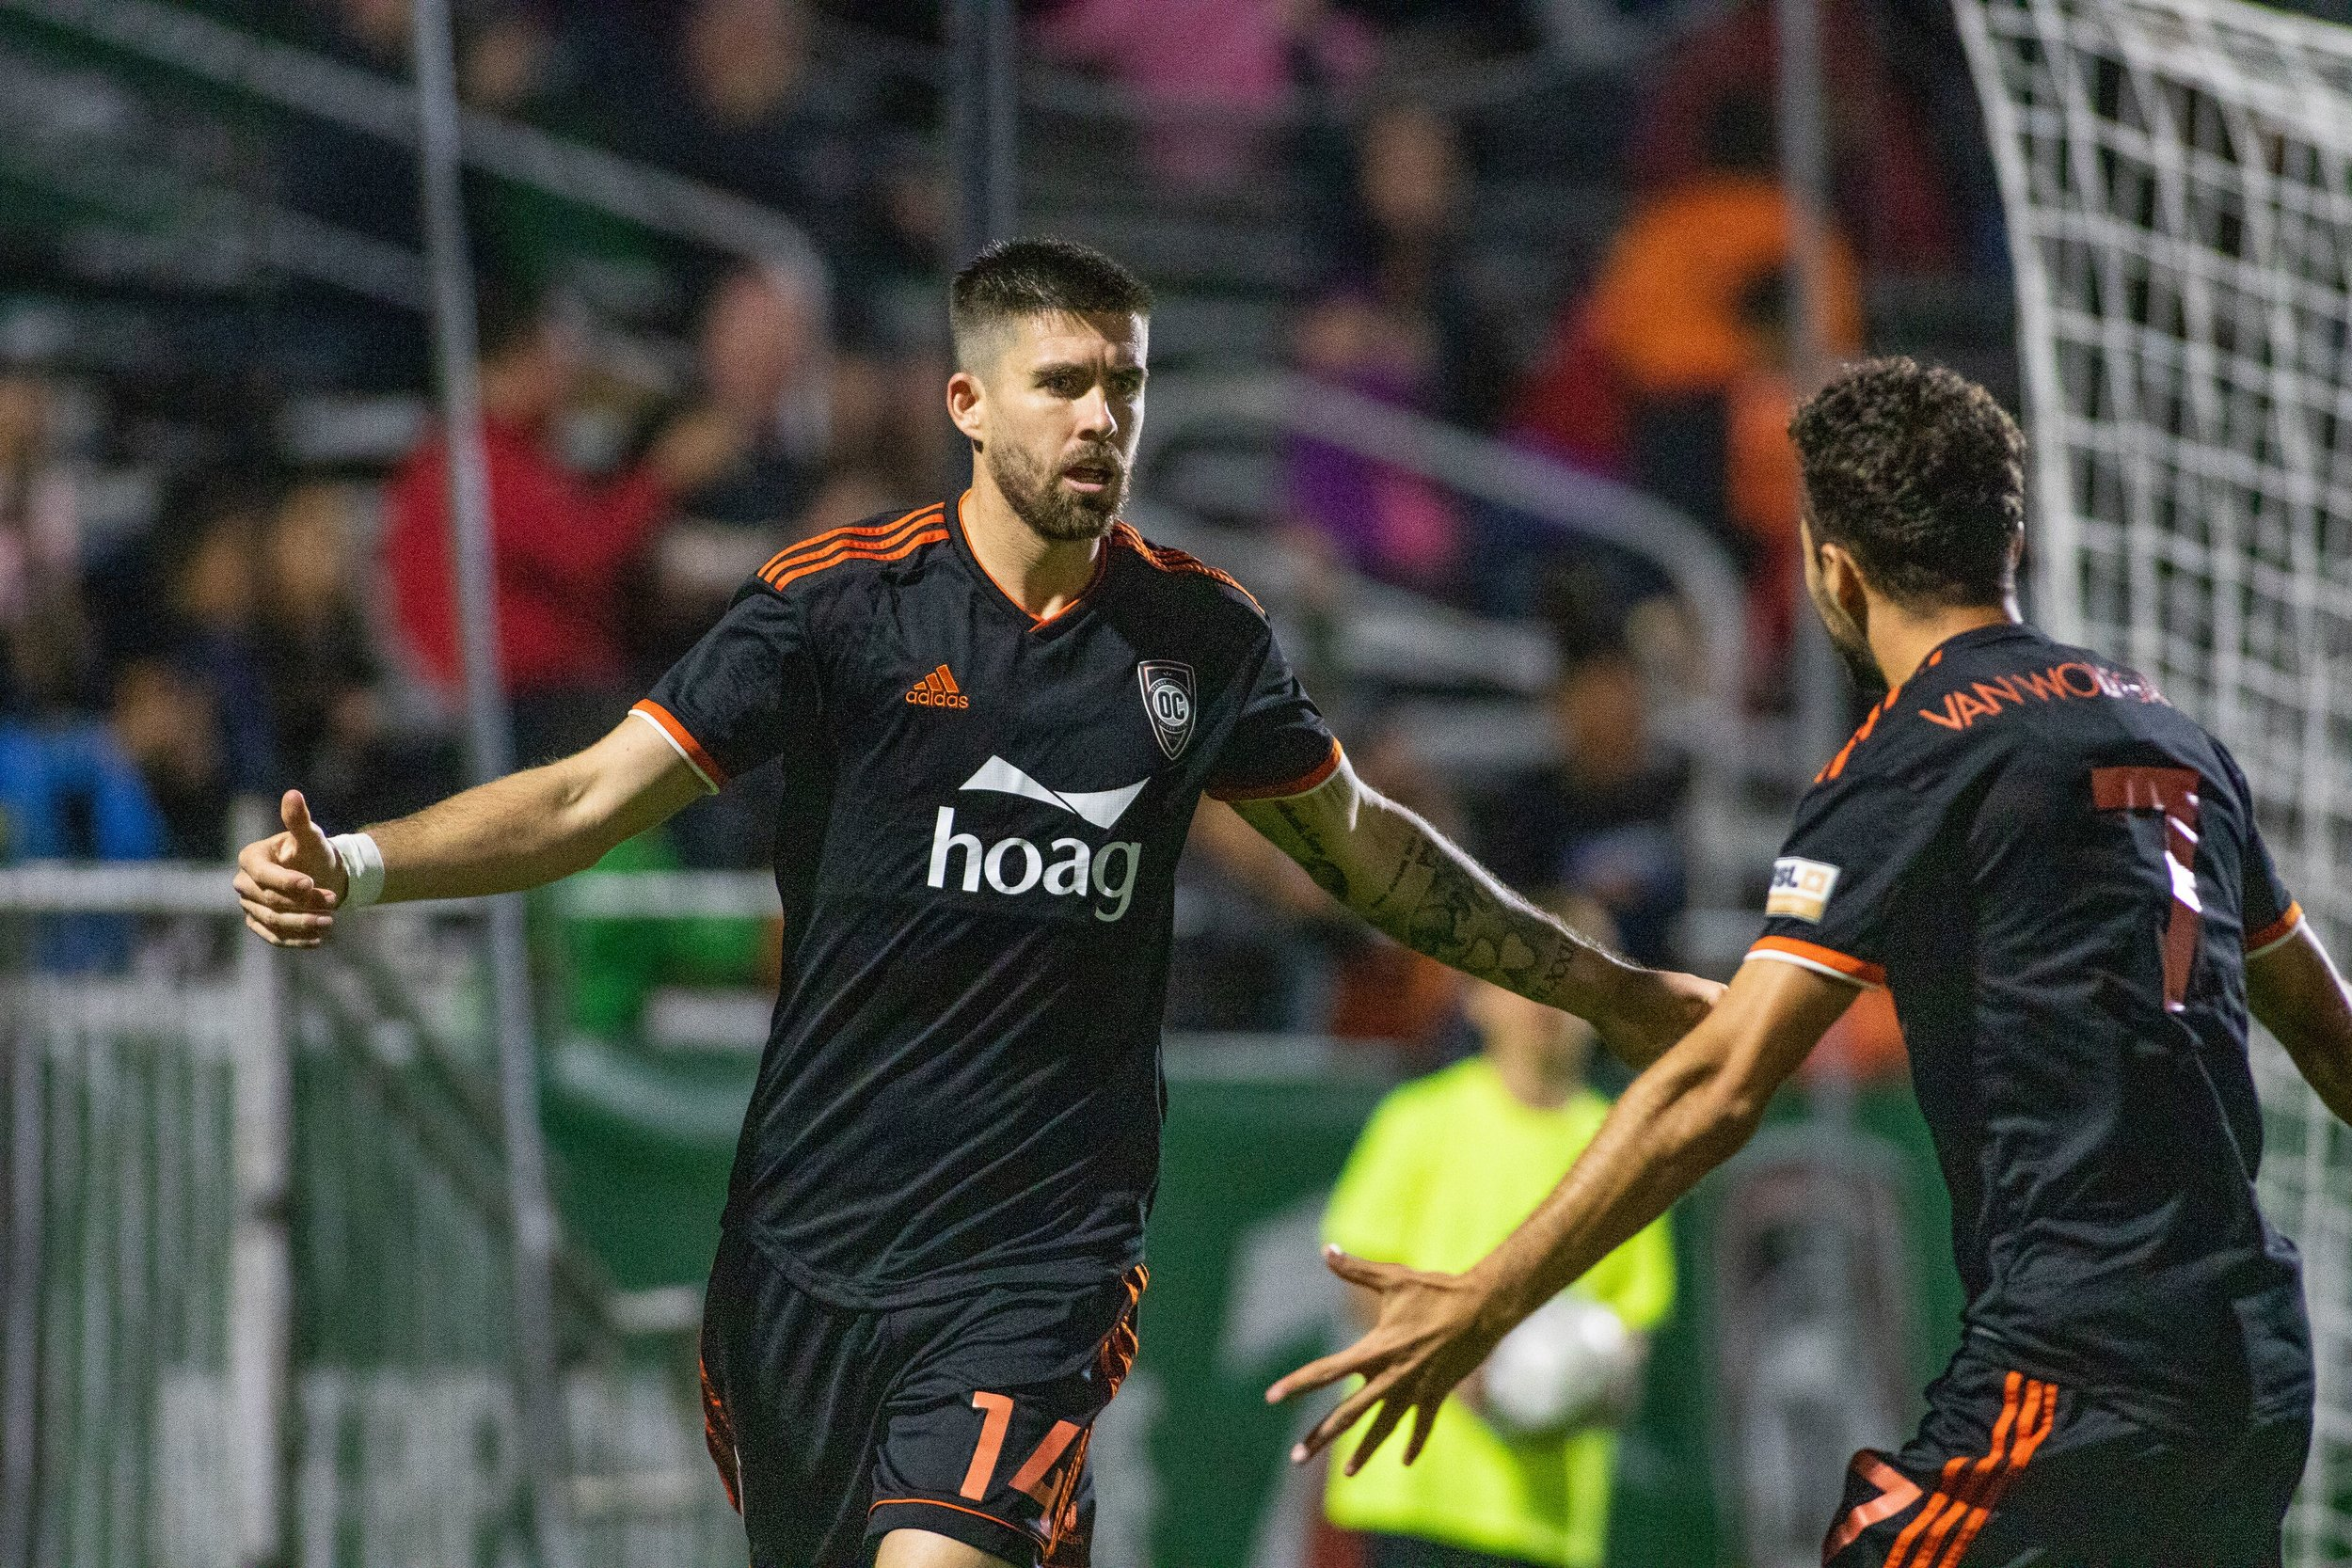 OCSC will be without the services of Aodhan Quinn (left), meaning that other players, like winger Jerry van Wolfgang (right), will be the main attacking outlets.  Photo credit: Orange County SC/ Liza Rozales